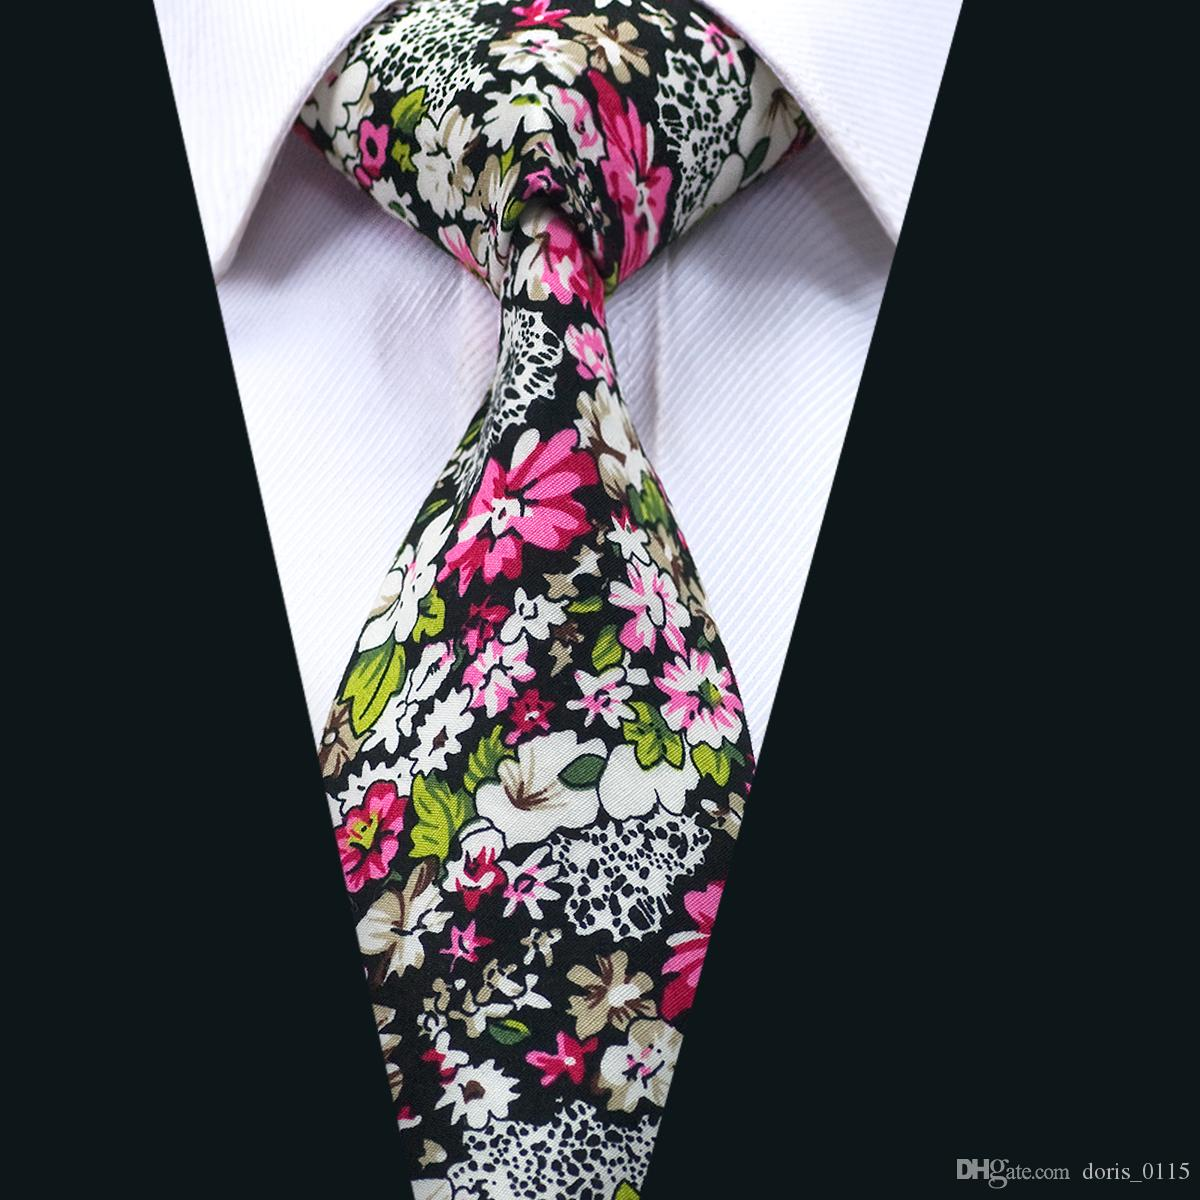 3ad4c4ee5ac6 Tie Floral Cotton Mens Neckties Colorful Men Ties With High Quality For  Business Wedding Party Gift D 1321 Ties Online Purple Bow Tie From  Doris_0115, ...